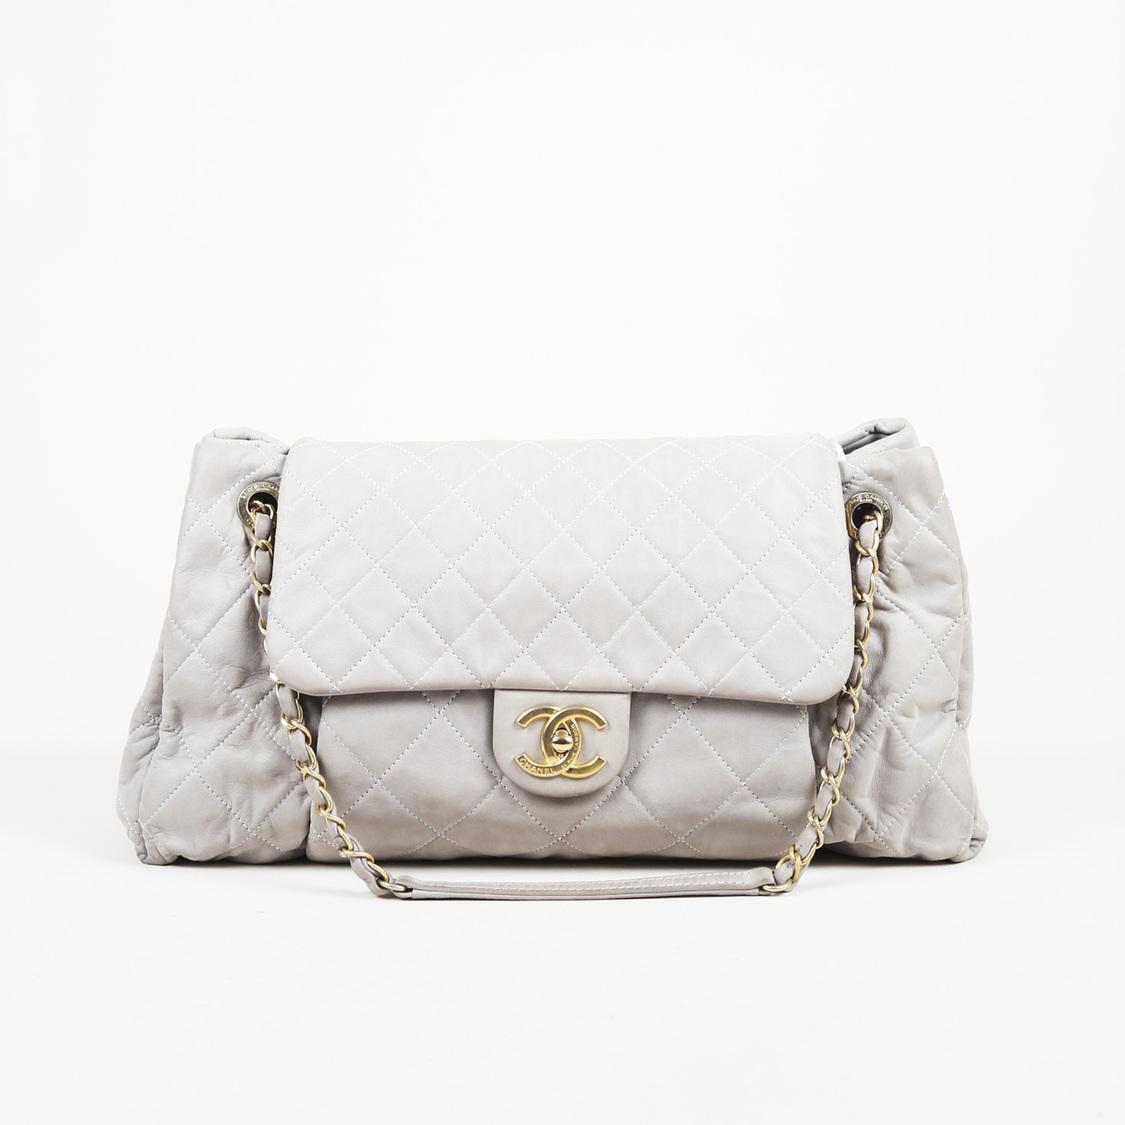 dd676acb3fd4 Chanel Quilted Leather